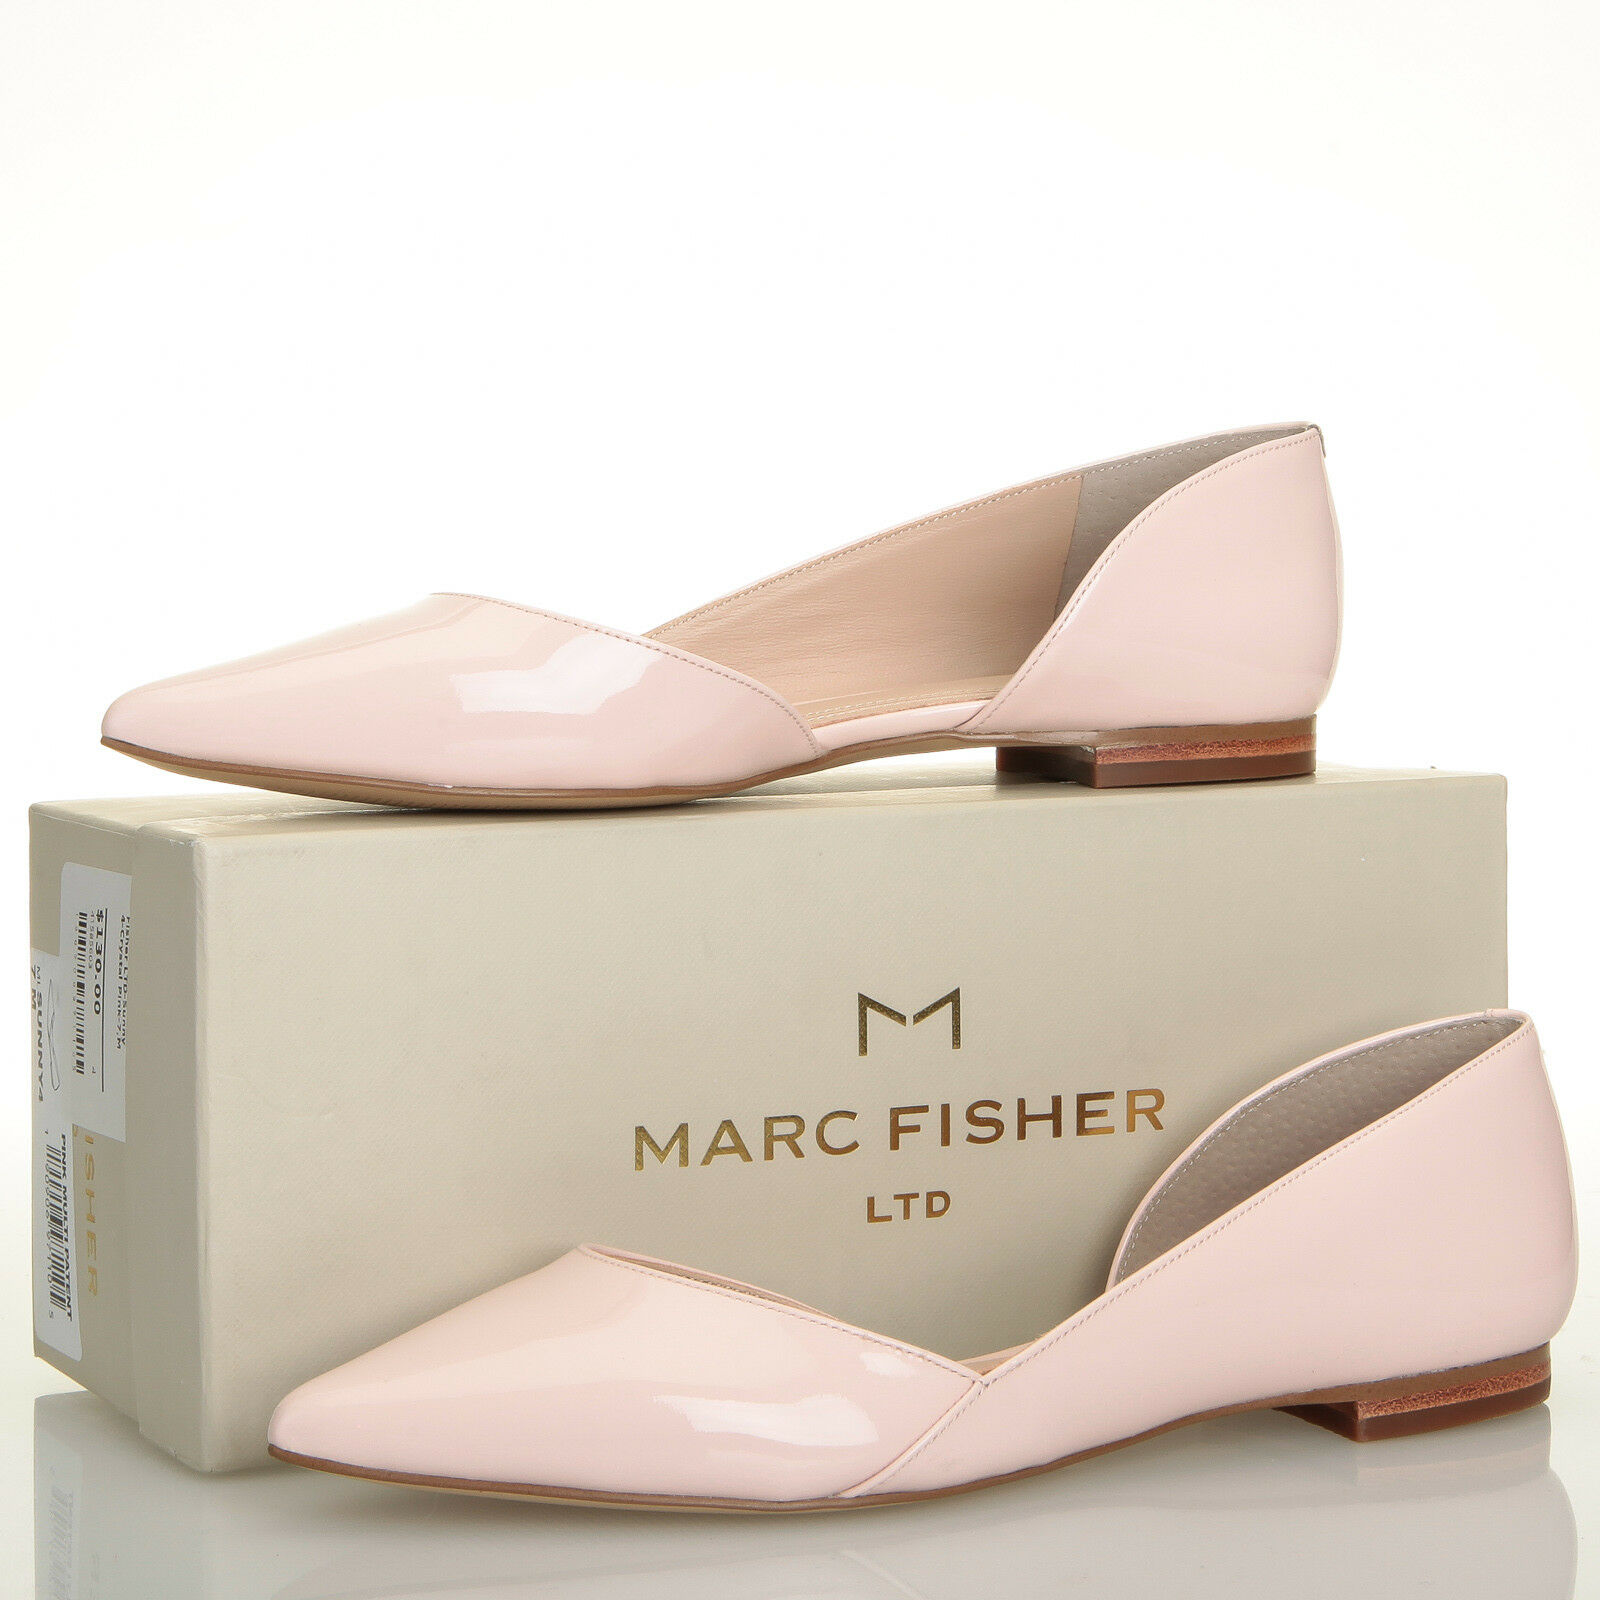 Marc Fisher LTD Sunny 4 Light Pink Patent Pointed Toe Flats - Size 7 M